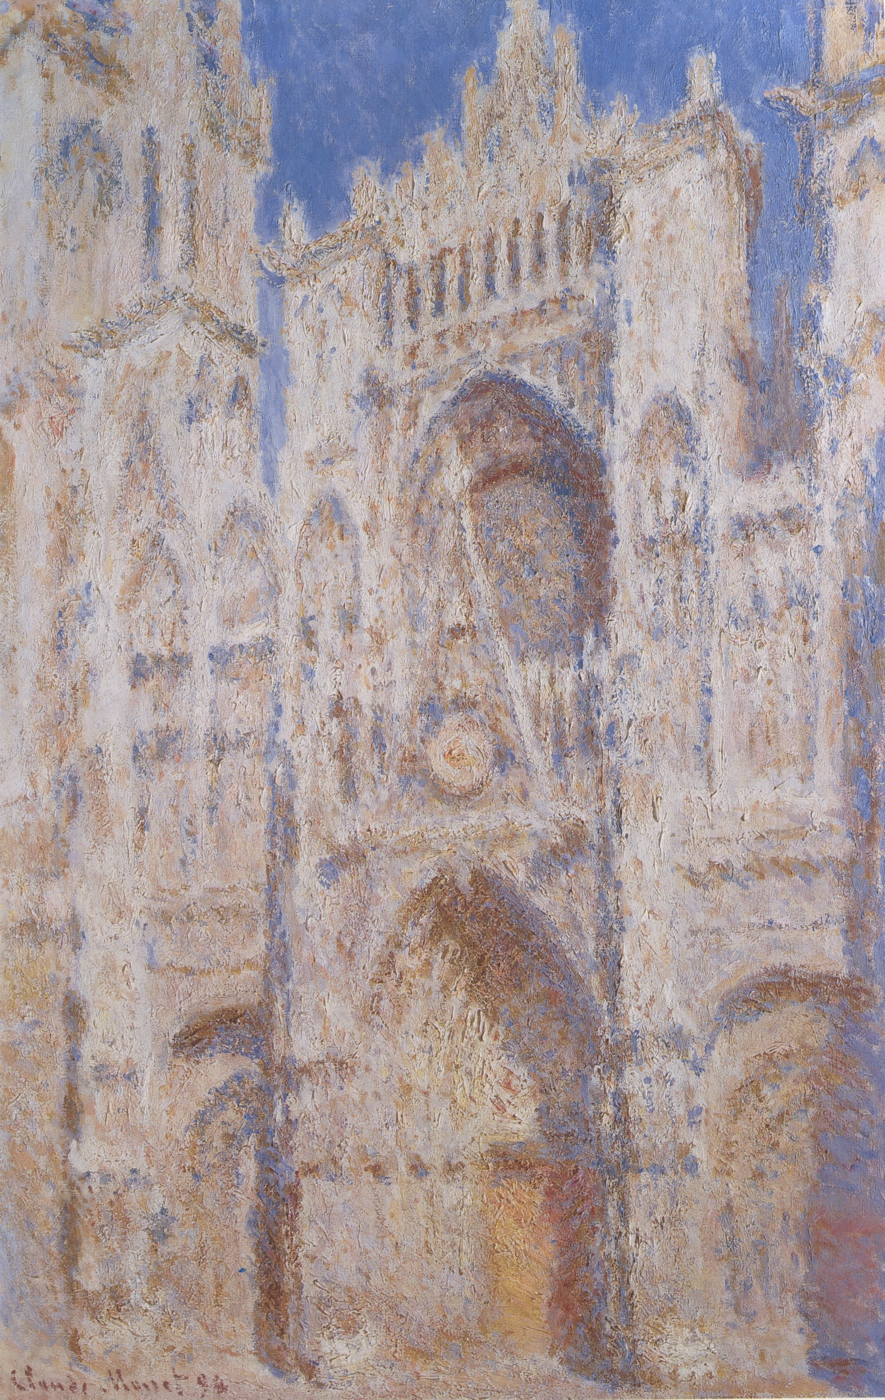 EPPH   Mo   s Rouen Cathedral  18924